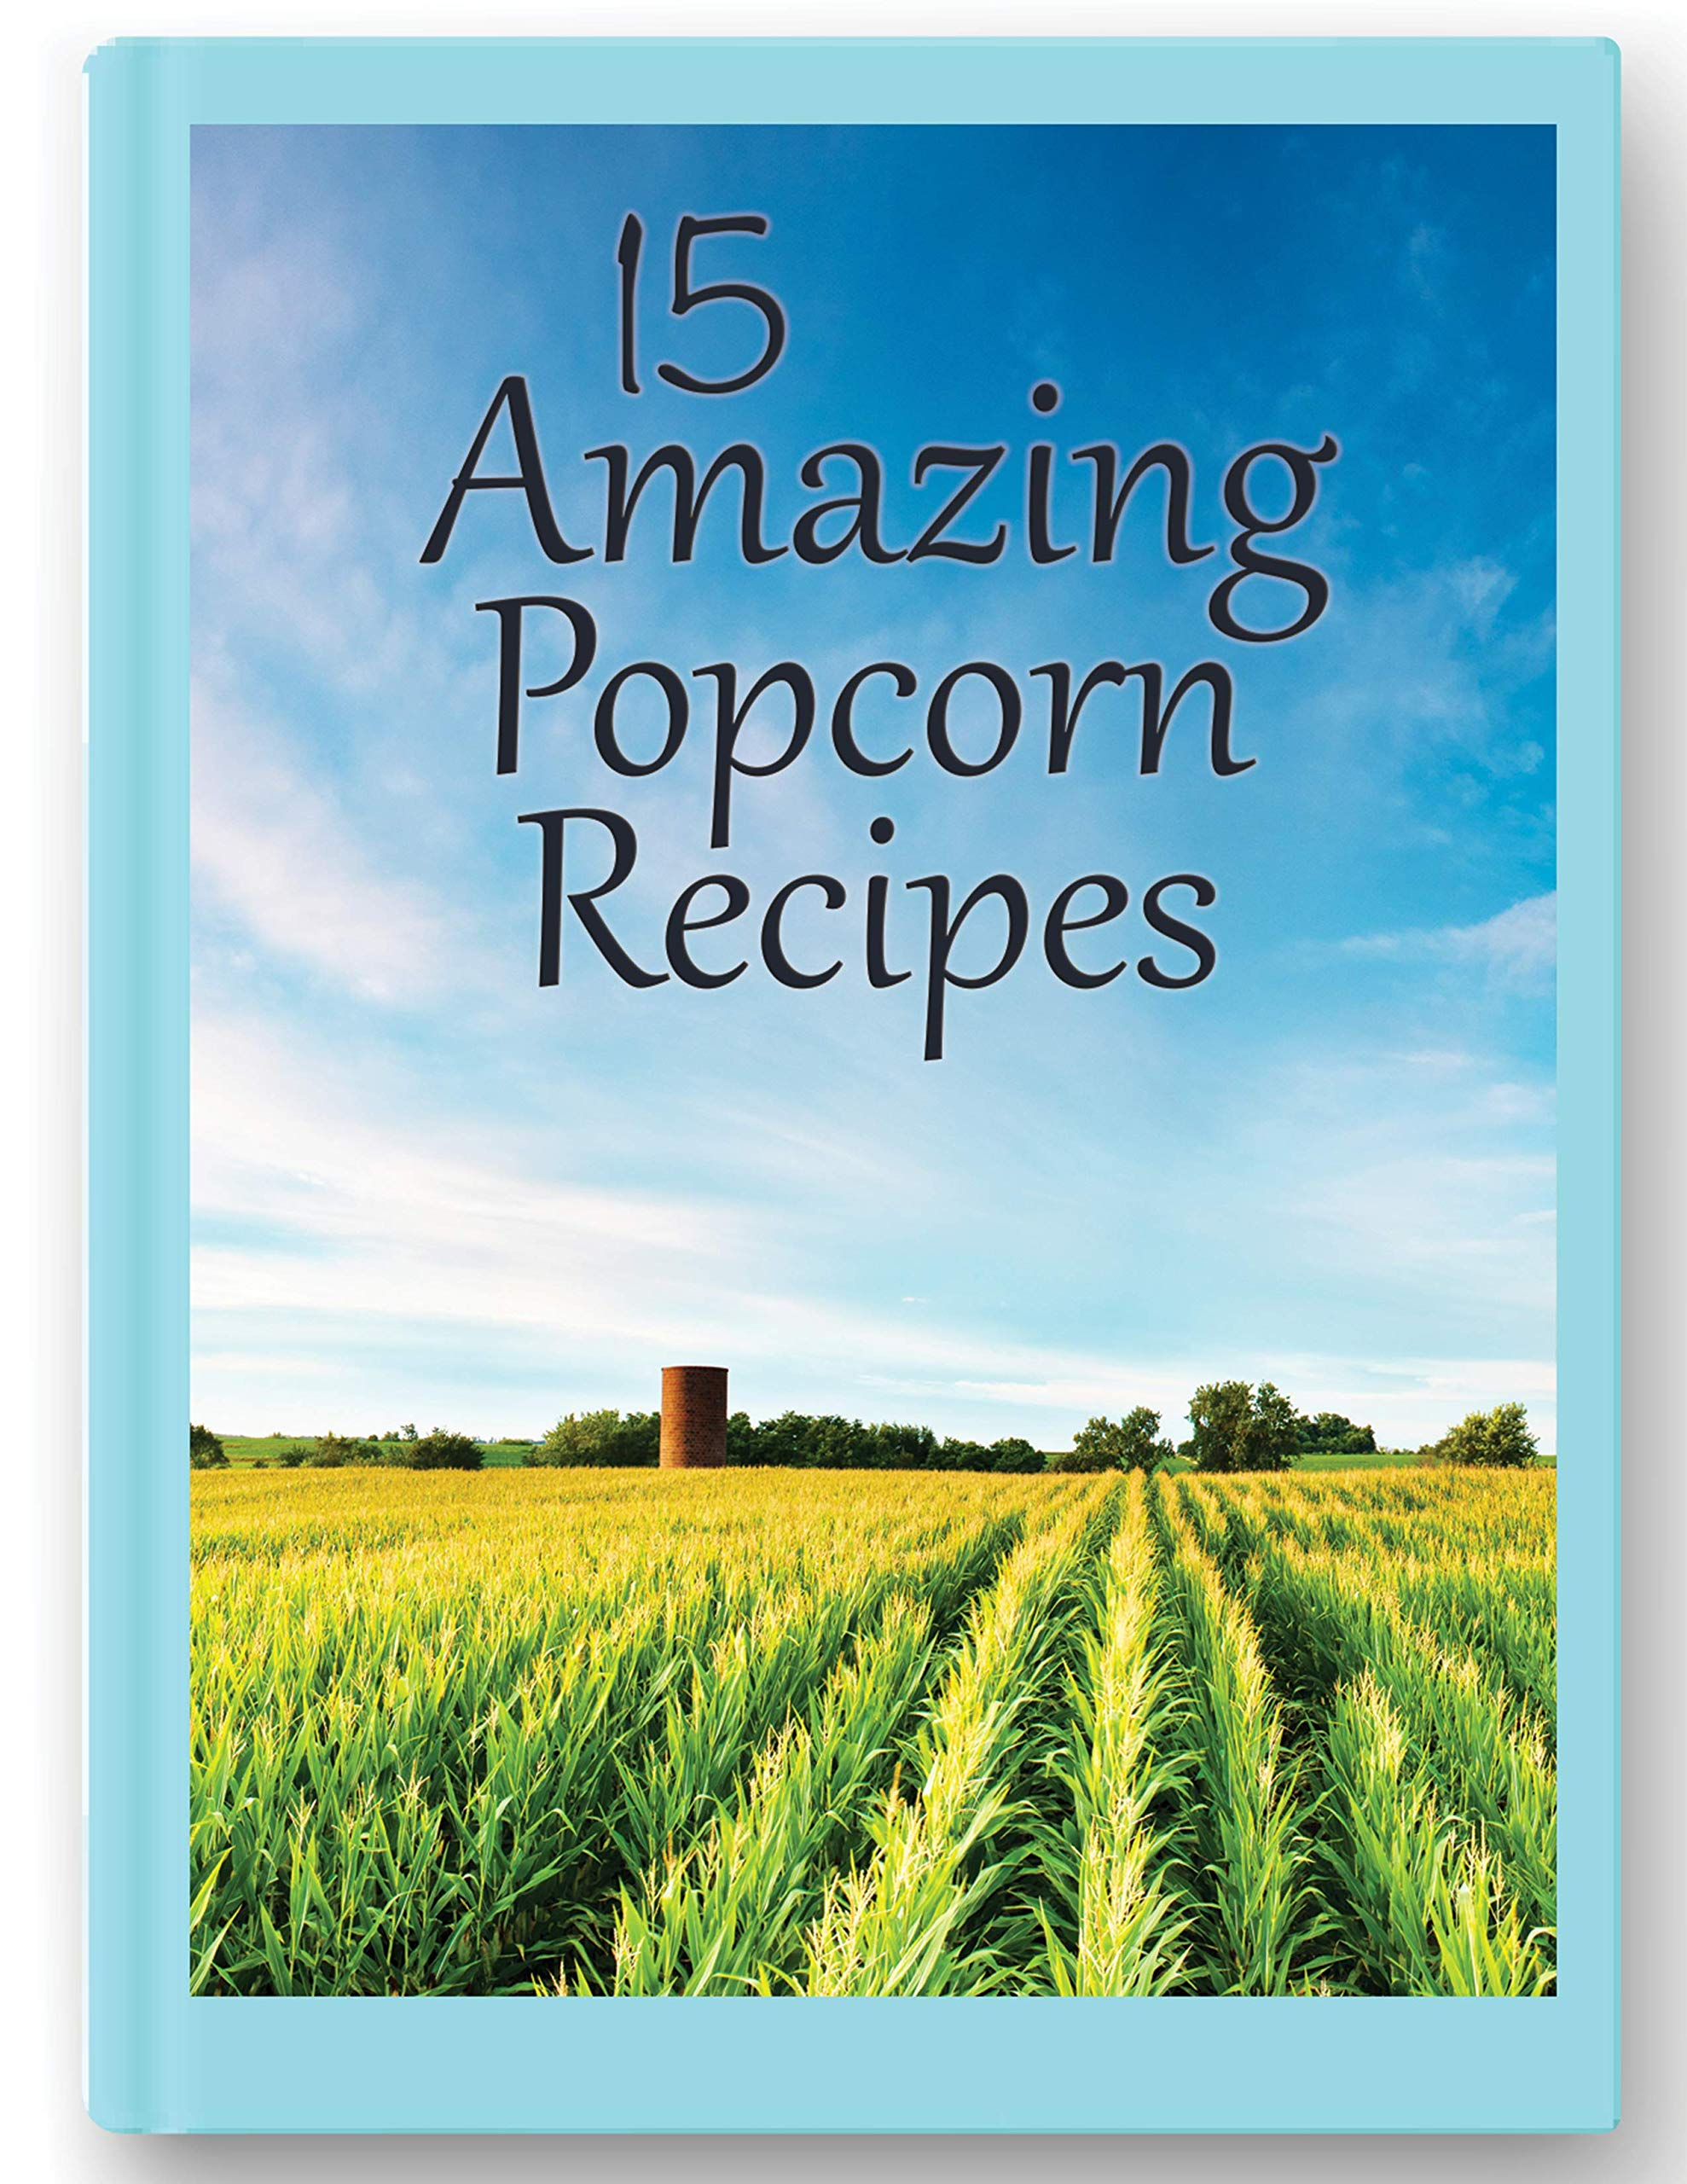 Amish Country Popcorn - Old Fashioned Baby White - (4 Ounce - 24 Bags) - Small & Tender Popcorn - With Recipe Guide by Amish Country Popcorn (Image #8)